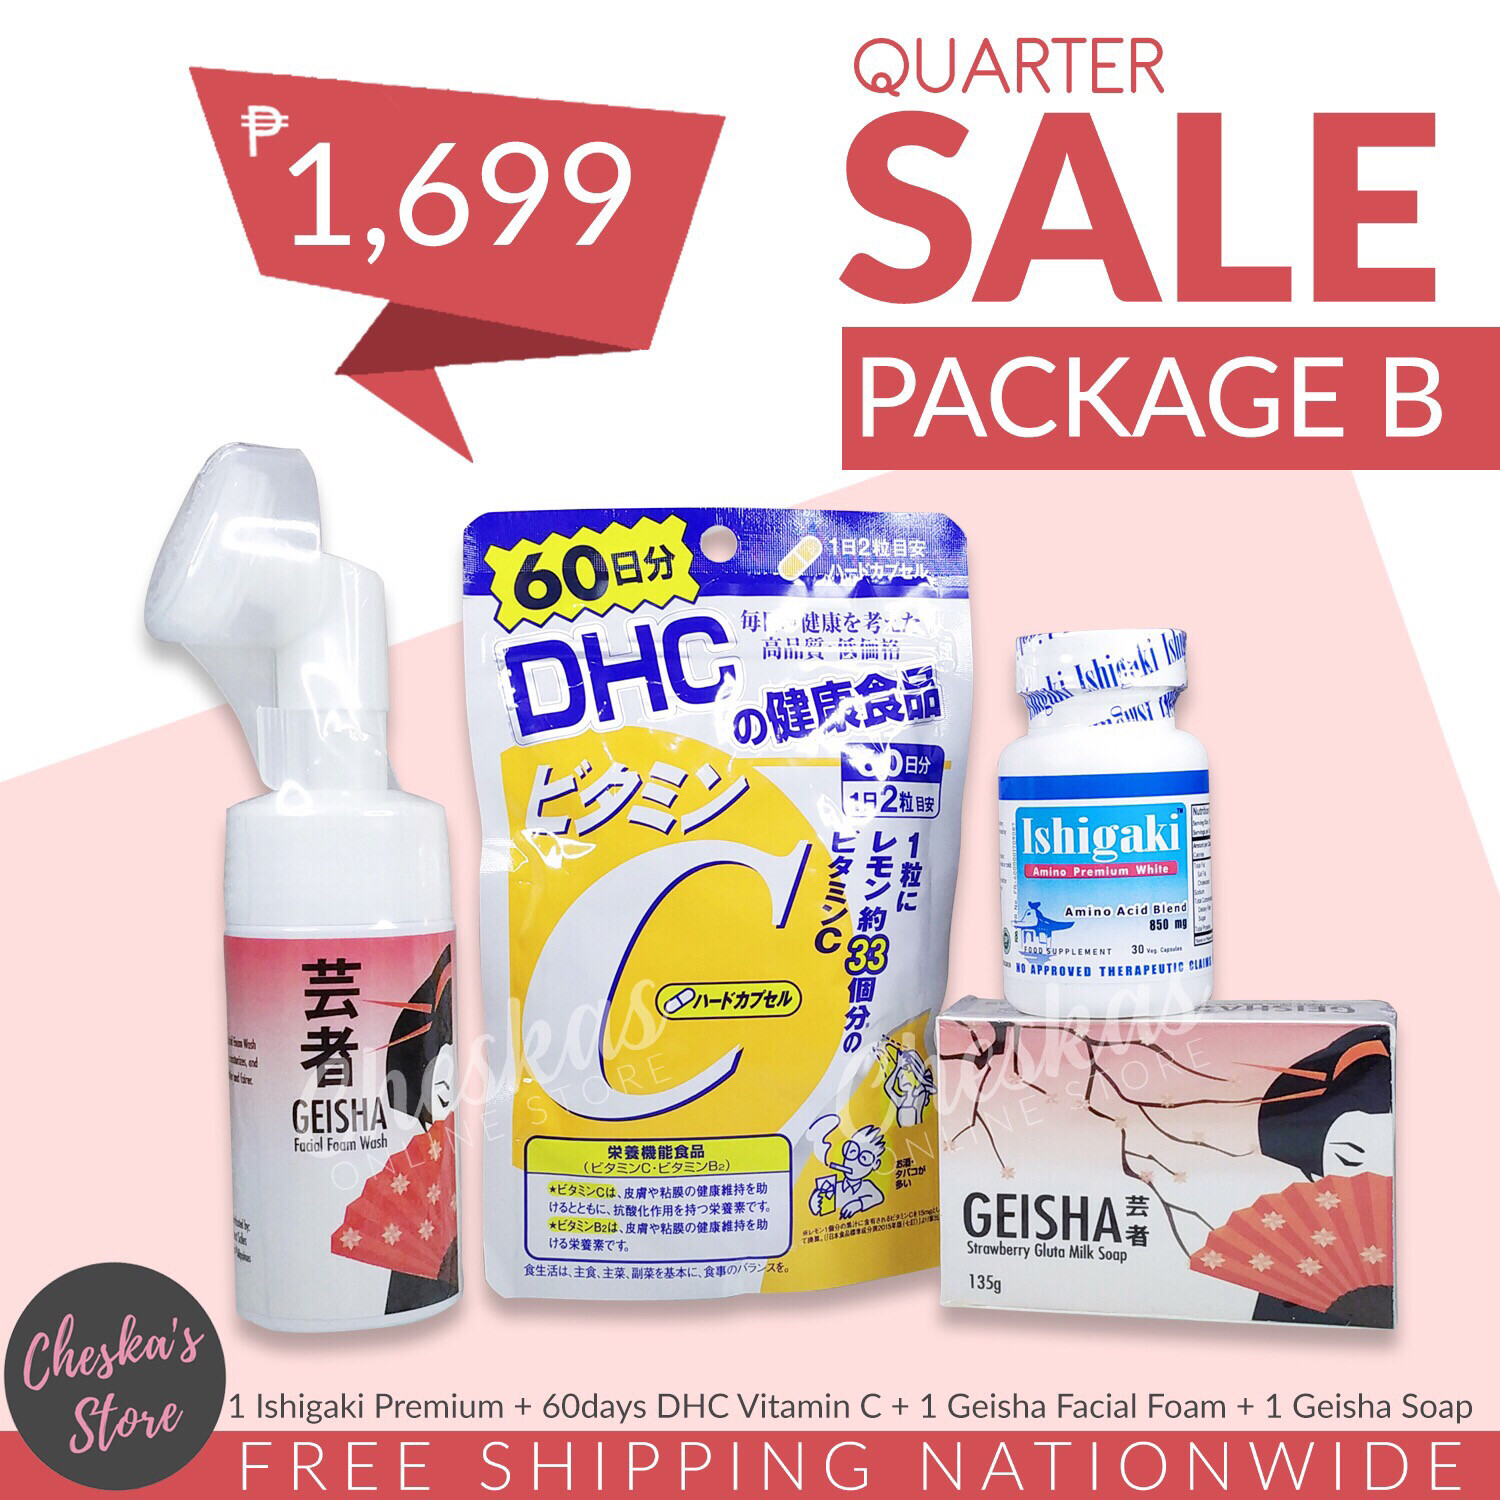 Quarter Sale Package B